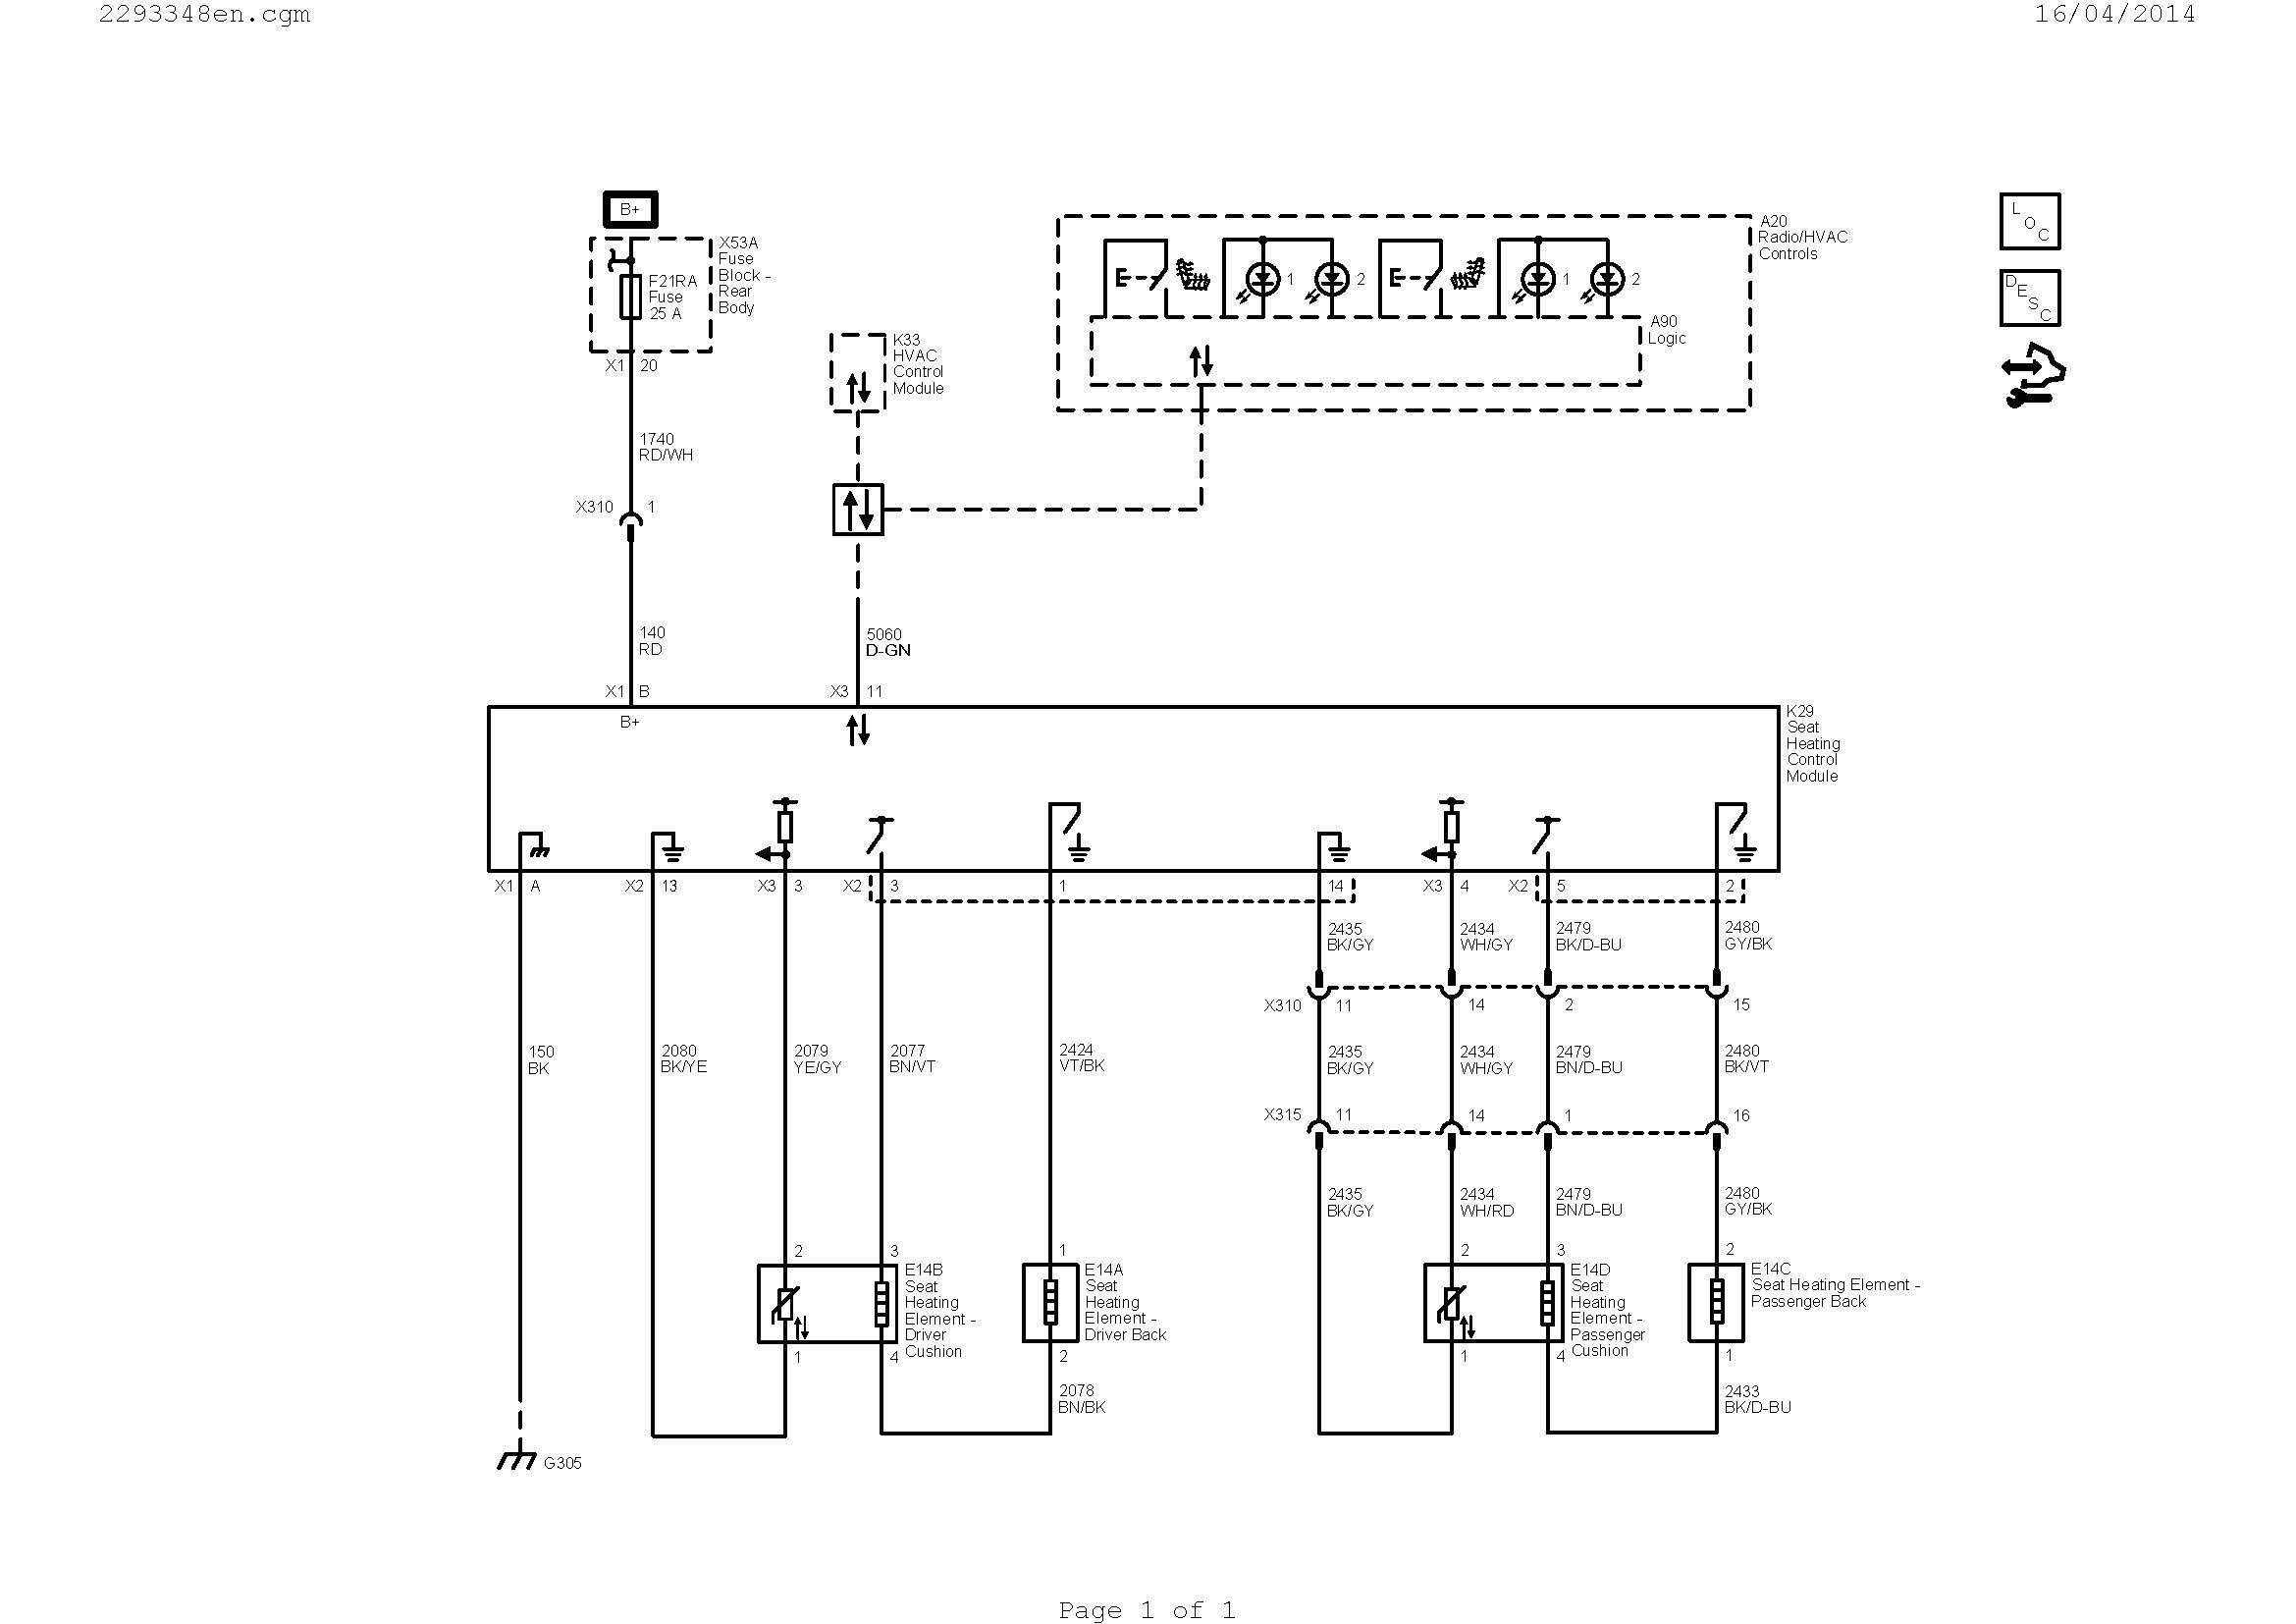 square d relay wiring diagram Download-Wiring Diagram for Rib Relay Inspirationa Wiring Schematic for Alternating Relay Wiring Diagram Collections 13-o